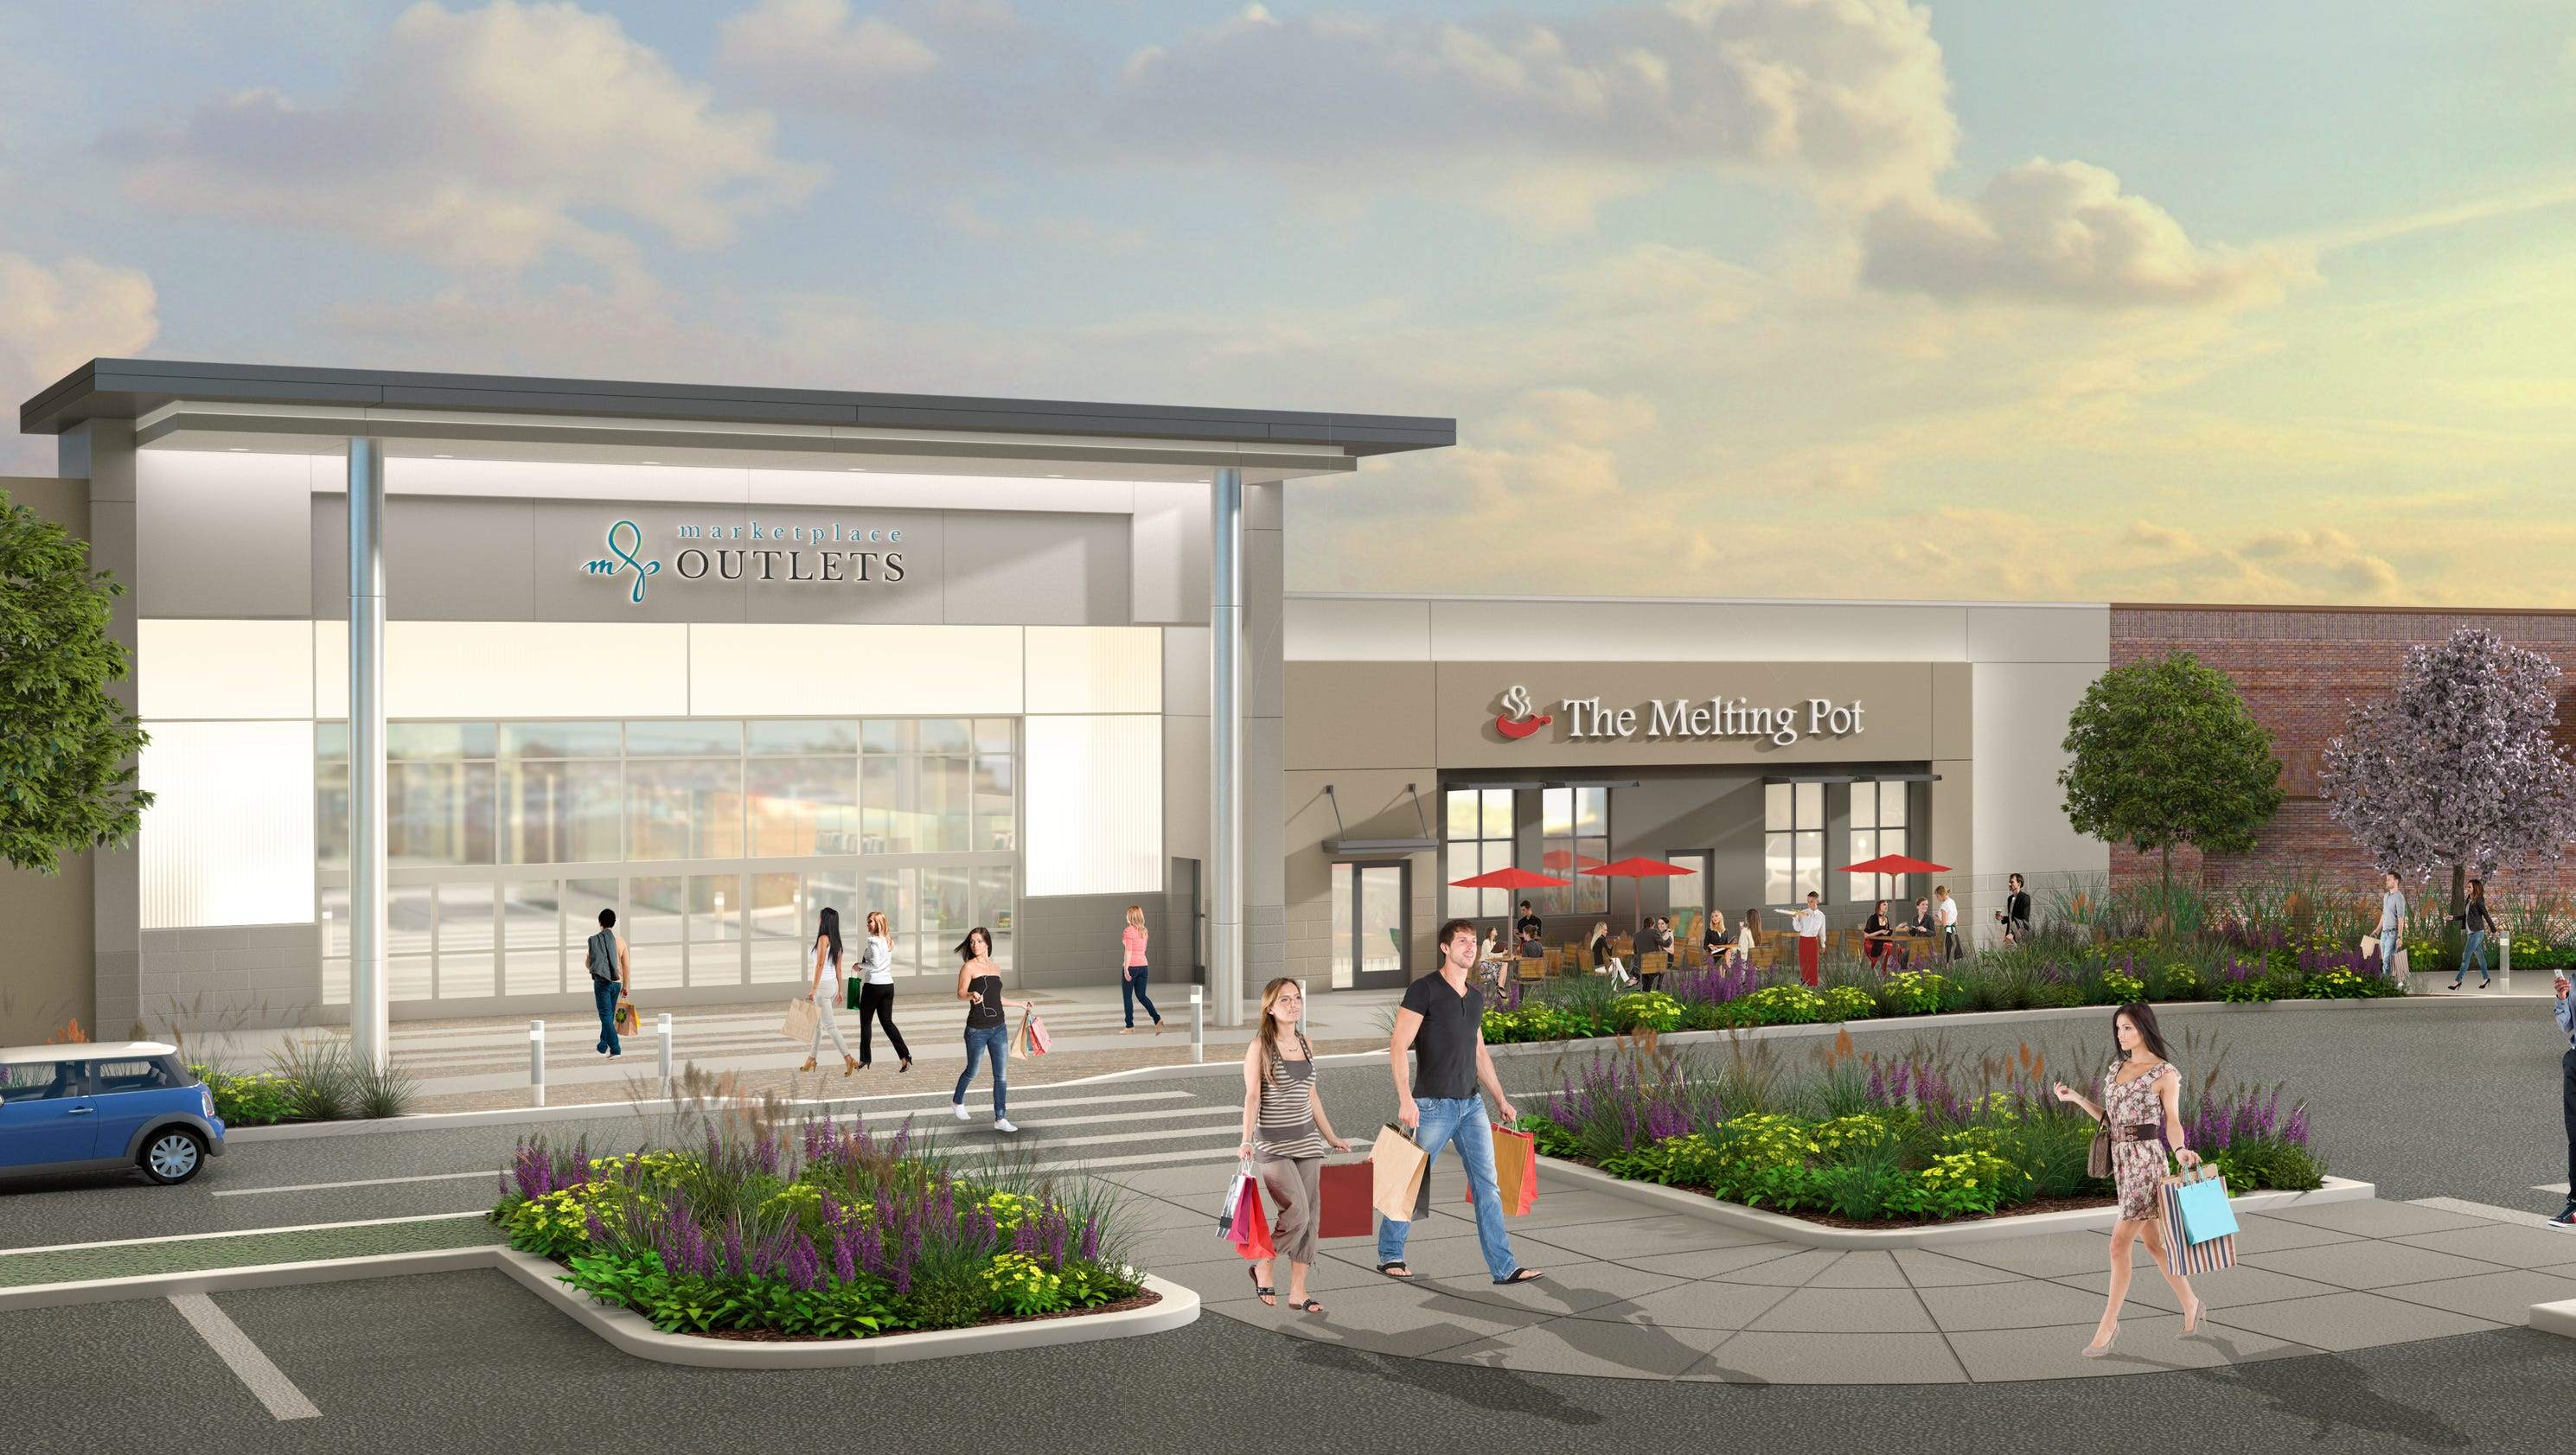 Marketplace Outlets! Wilmorite announces that The Marketplace Mall in Henrietta, NY will convert to an outlet center. The mall will undergo capital improvements, remerchandising of the retail mix, and be rebranded as Marketplace Outlets.